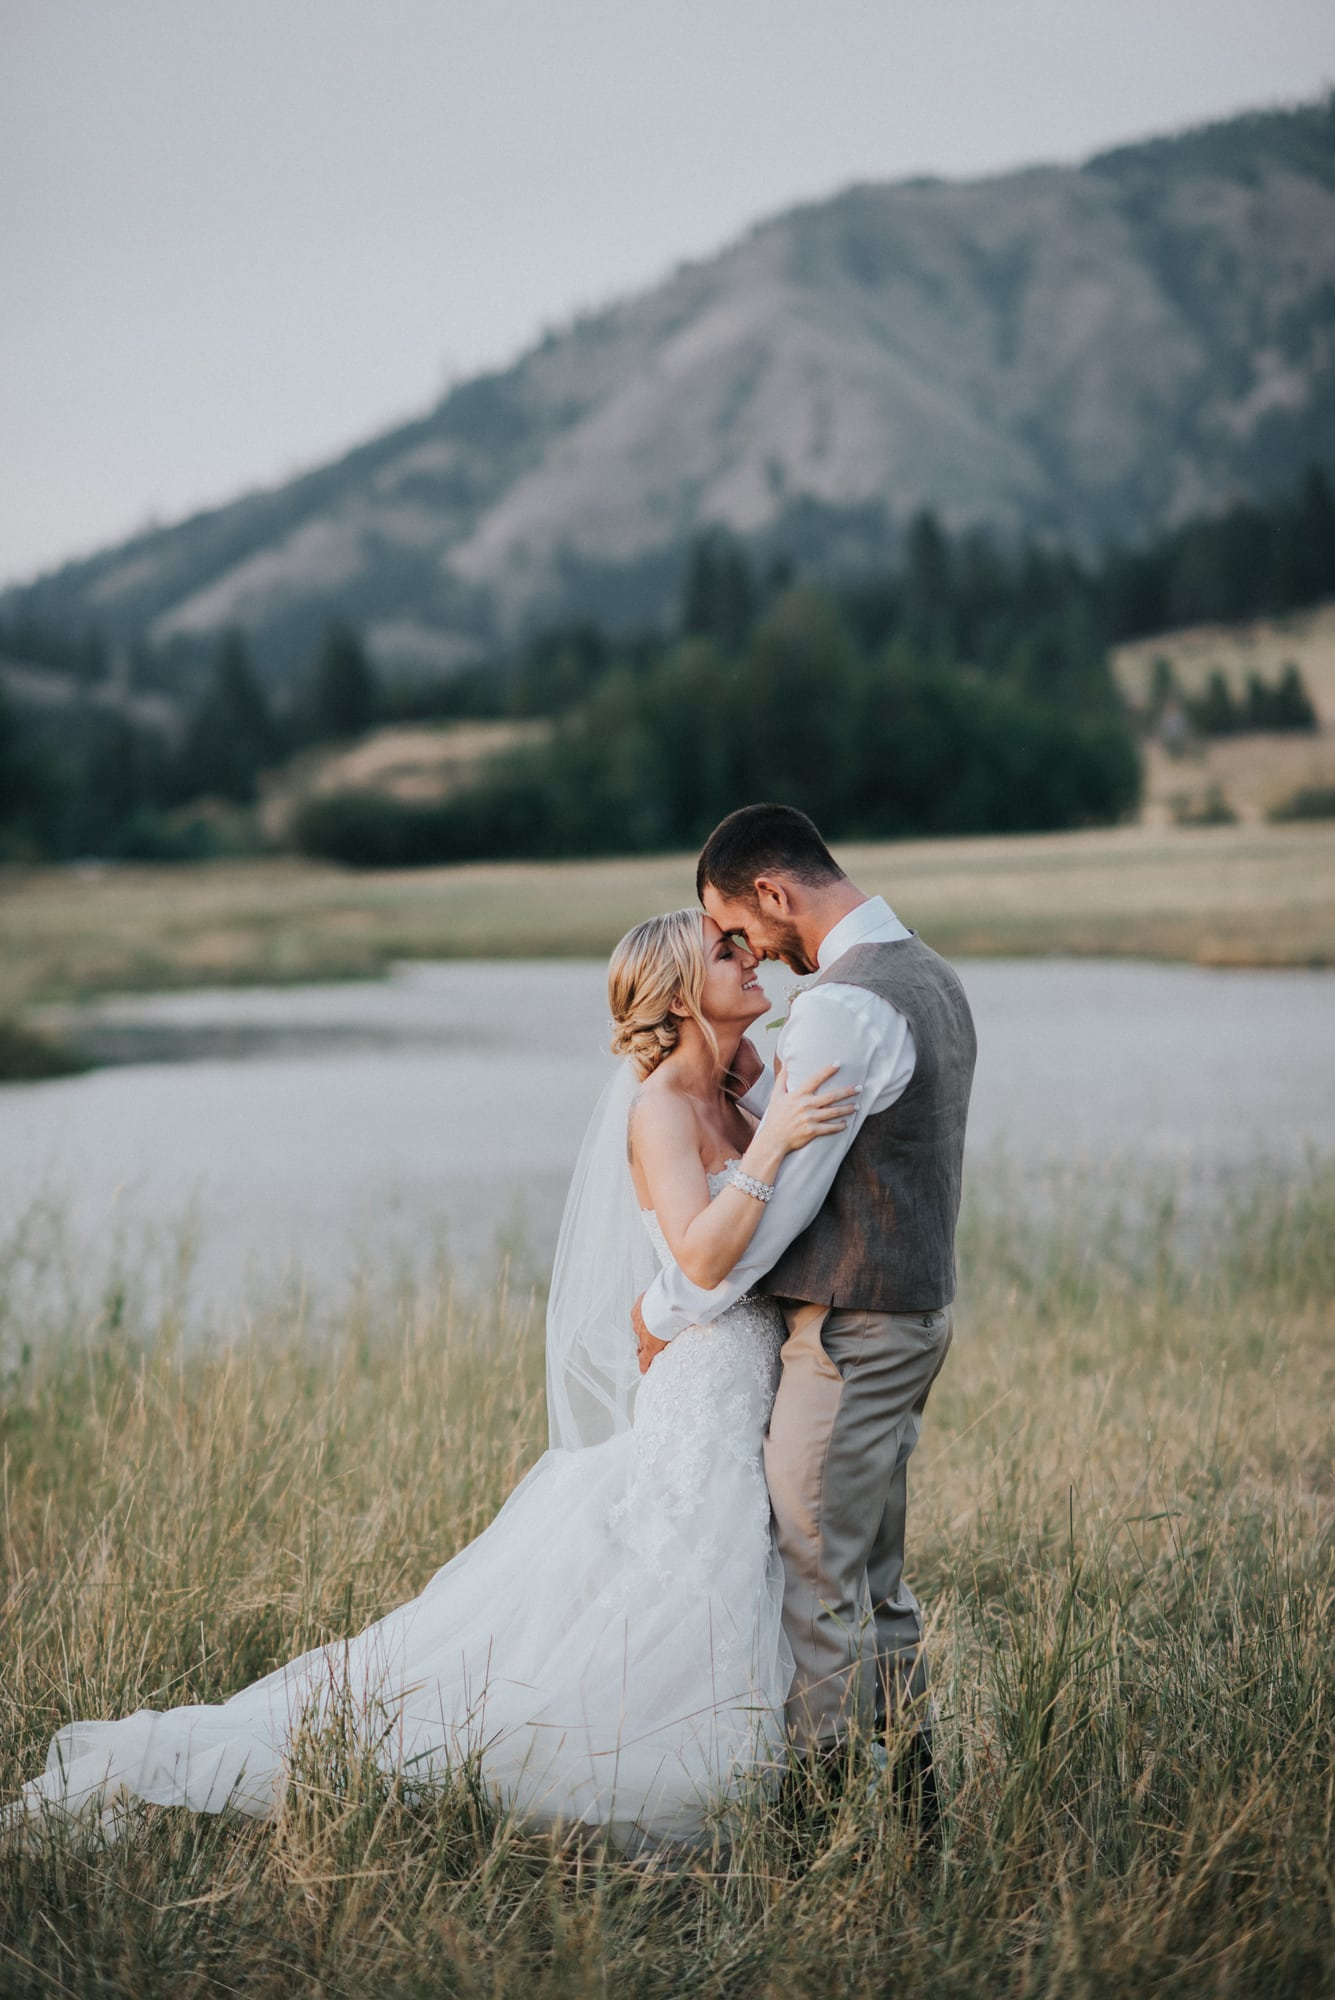 bride and groom portraits at the cattle barn with mountains in the background